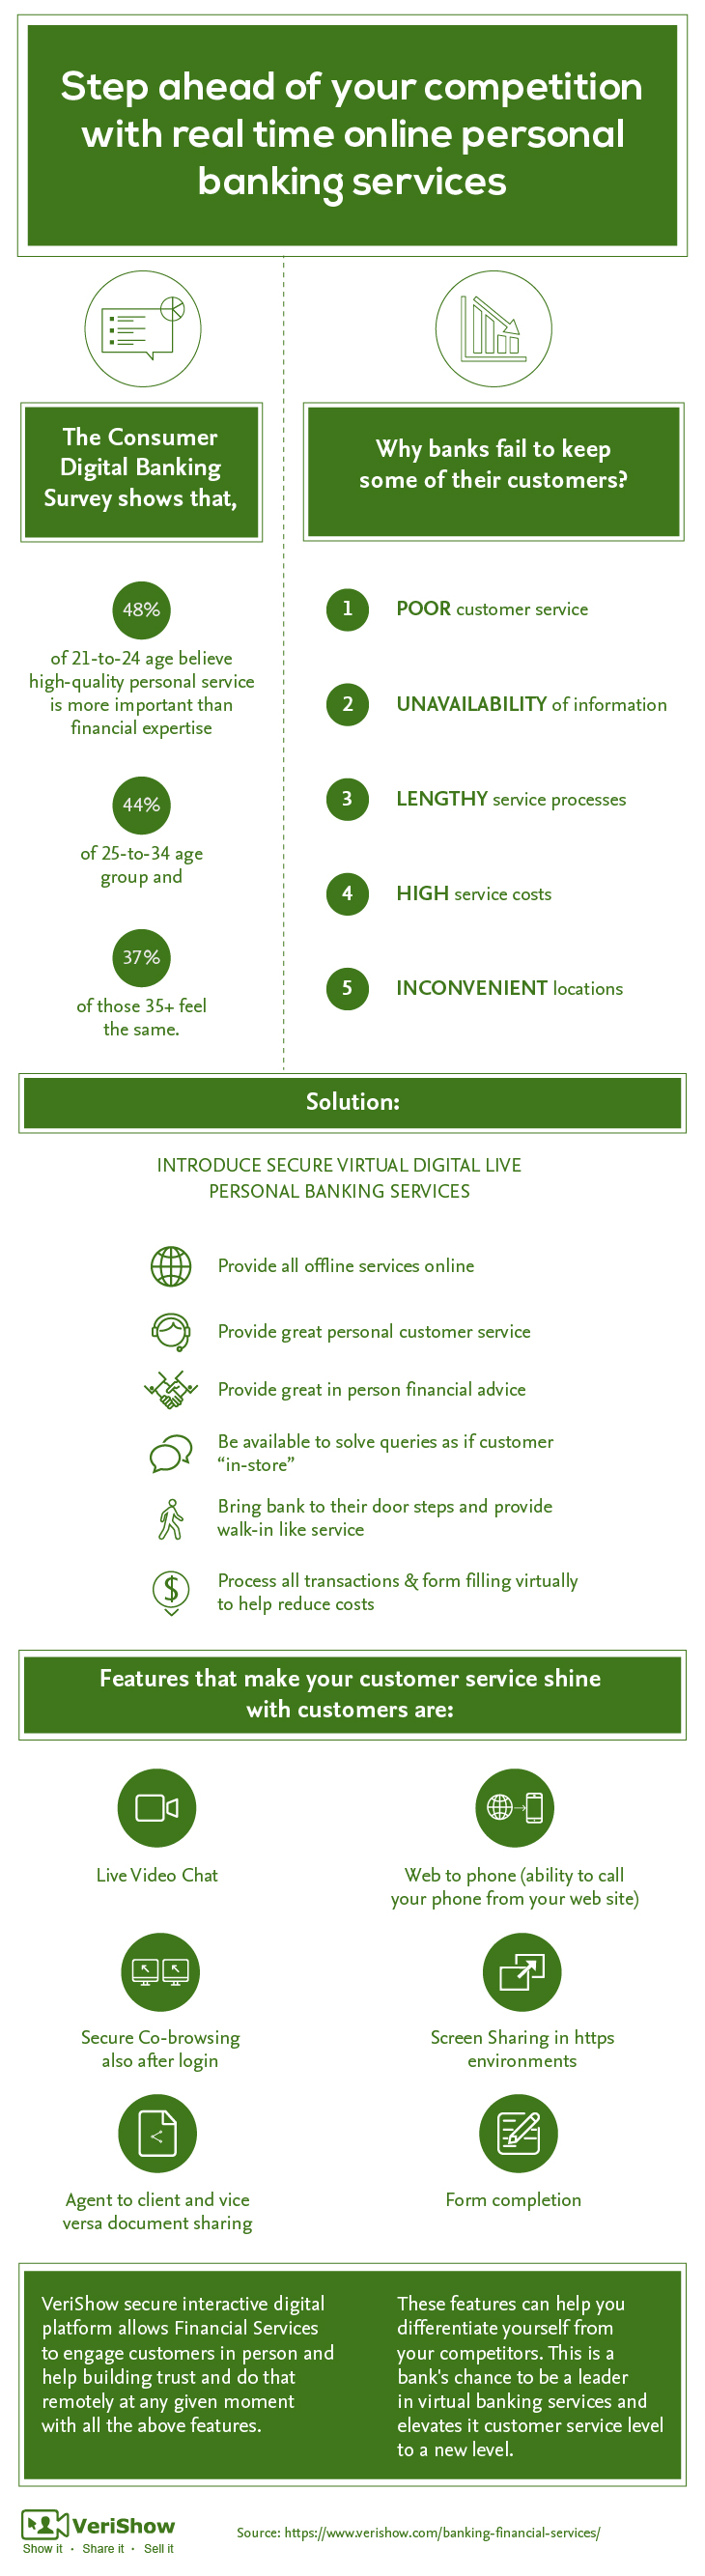 Step ahead of your competition with real time online personal banking services_Infographic